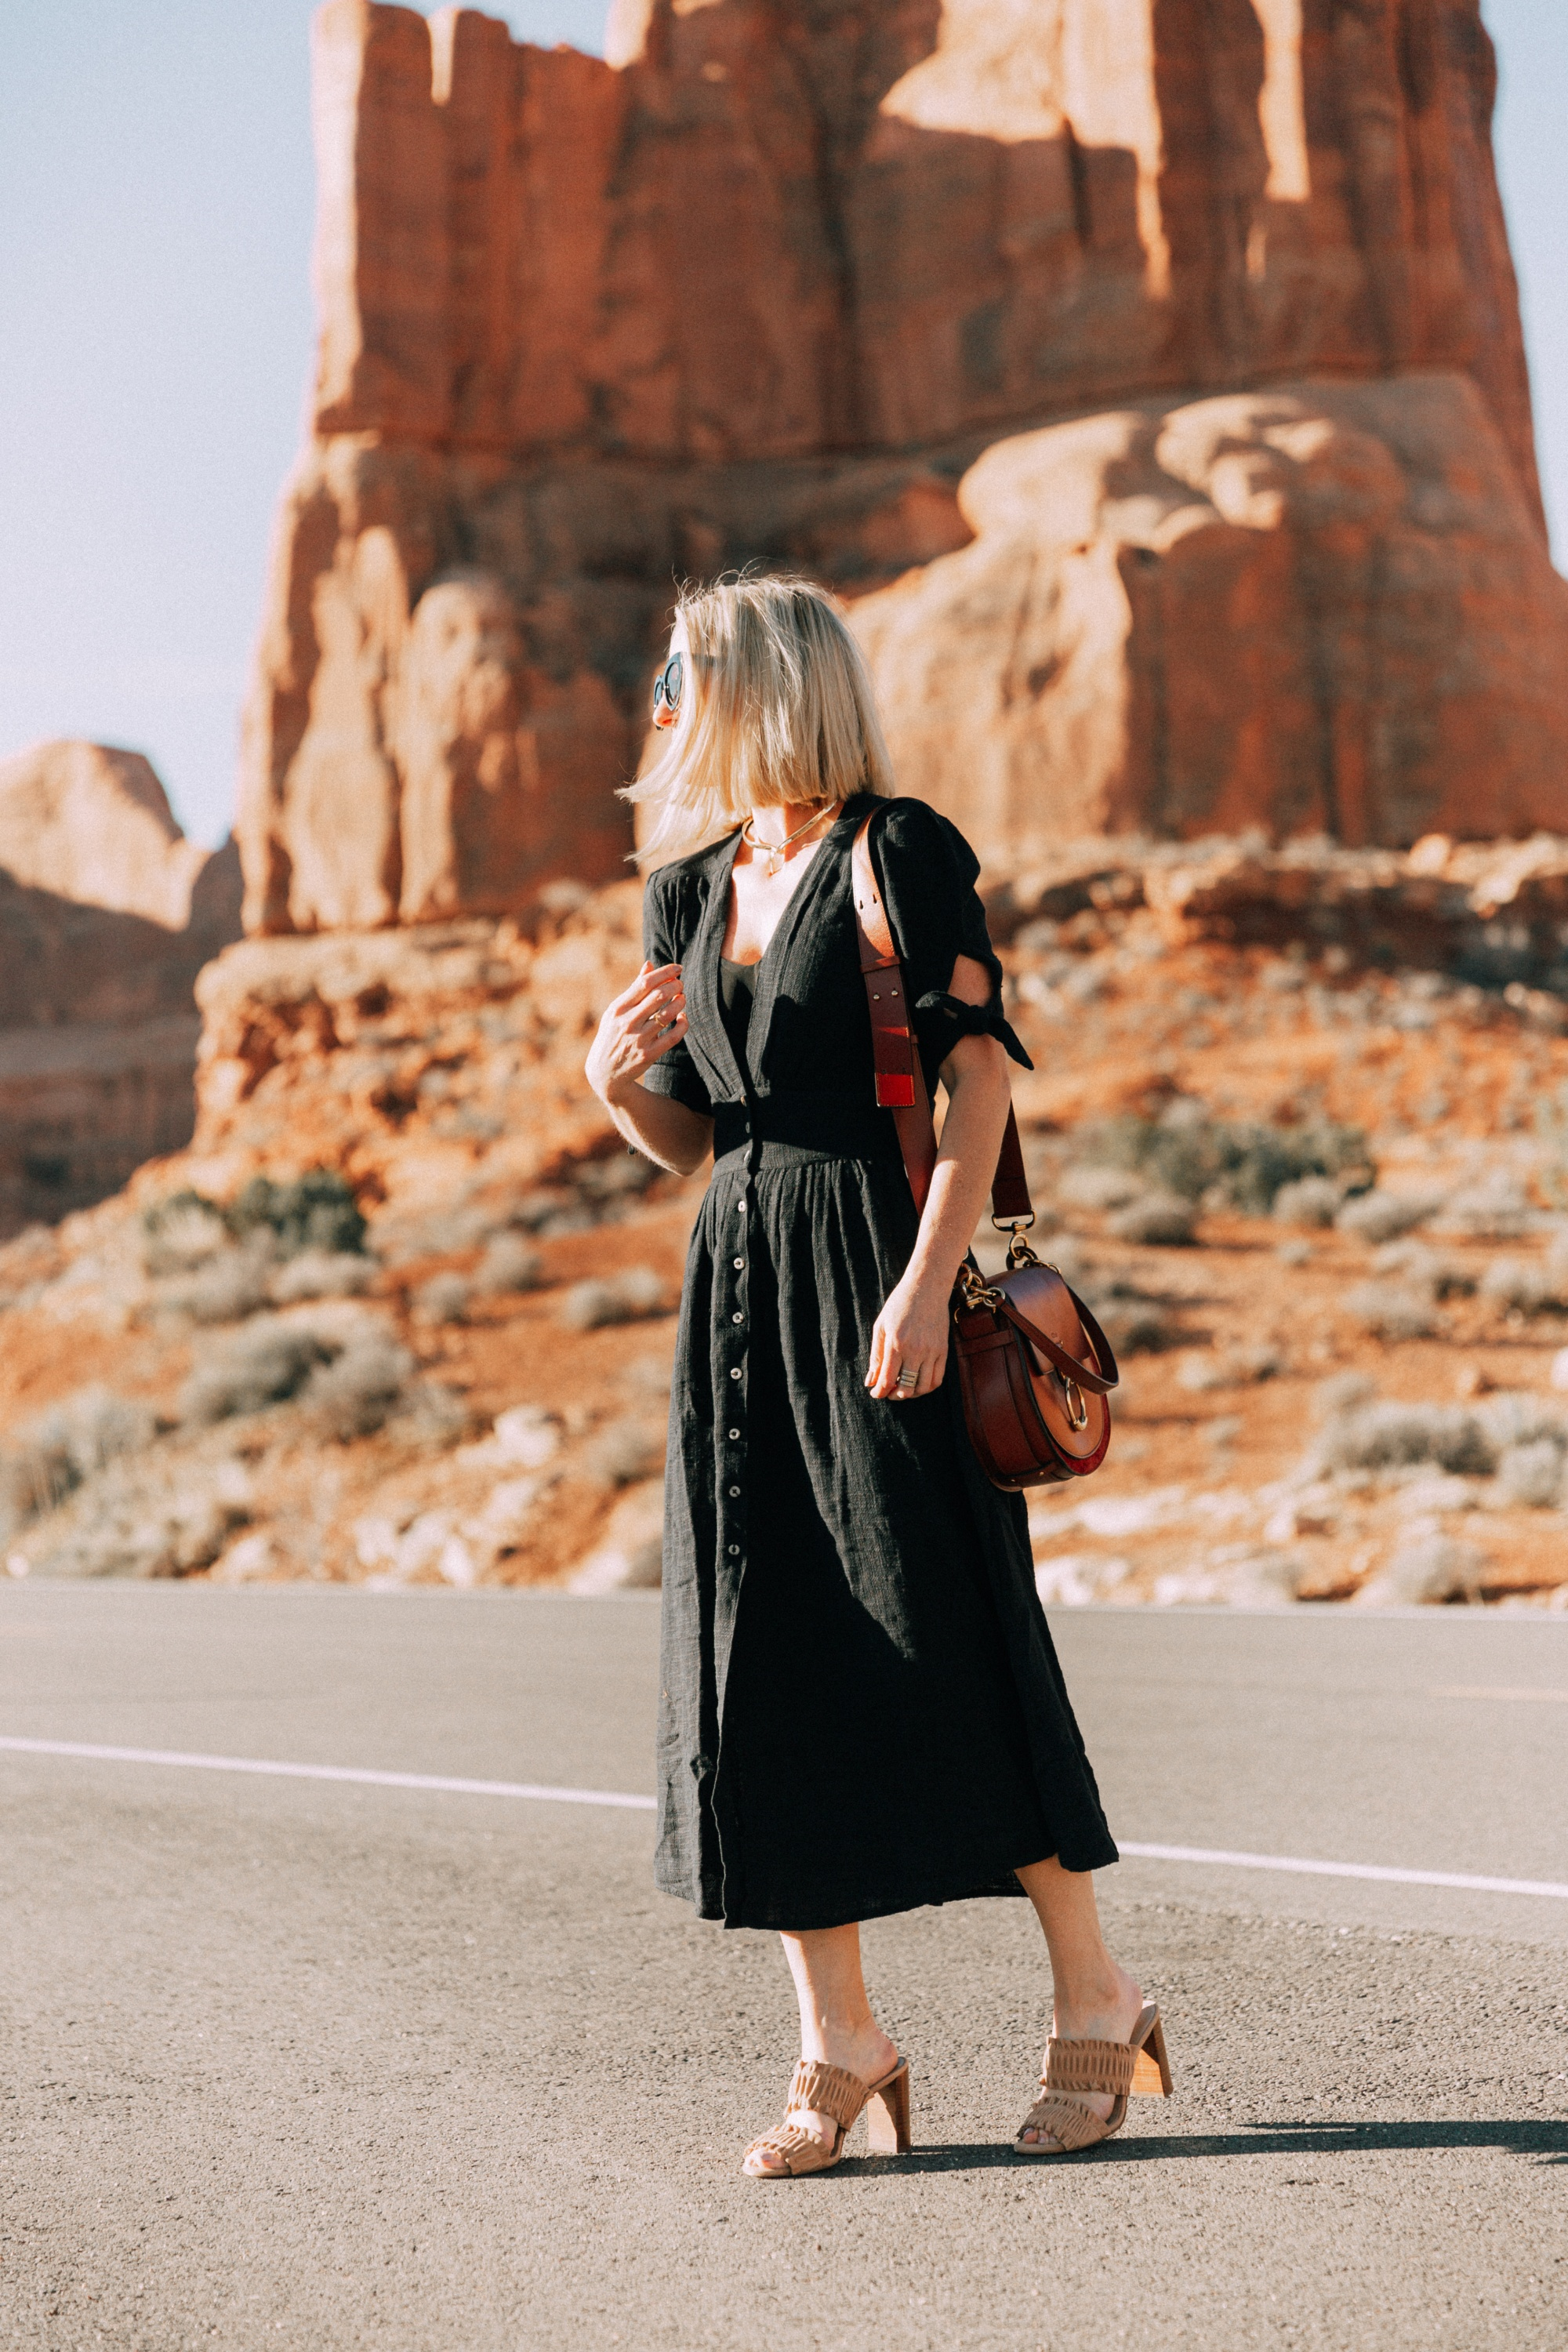 Spring Dresses, Fashion blogger Erin Busbee of BusbeeStyle.com wearing a black Free People button front dress, with Ann Taylor sandals and the CHloe Tess handbag in Moab, Utah